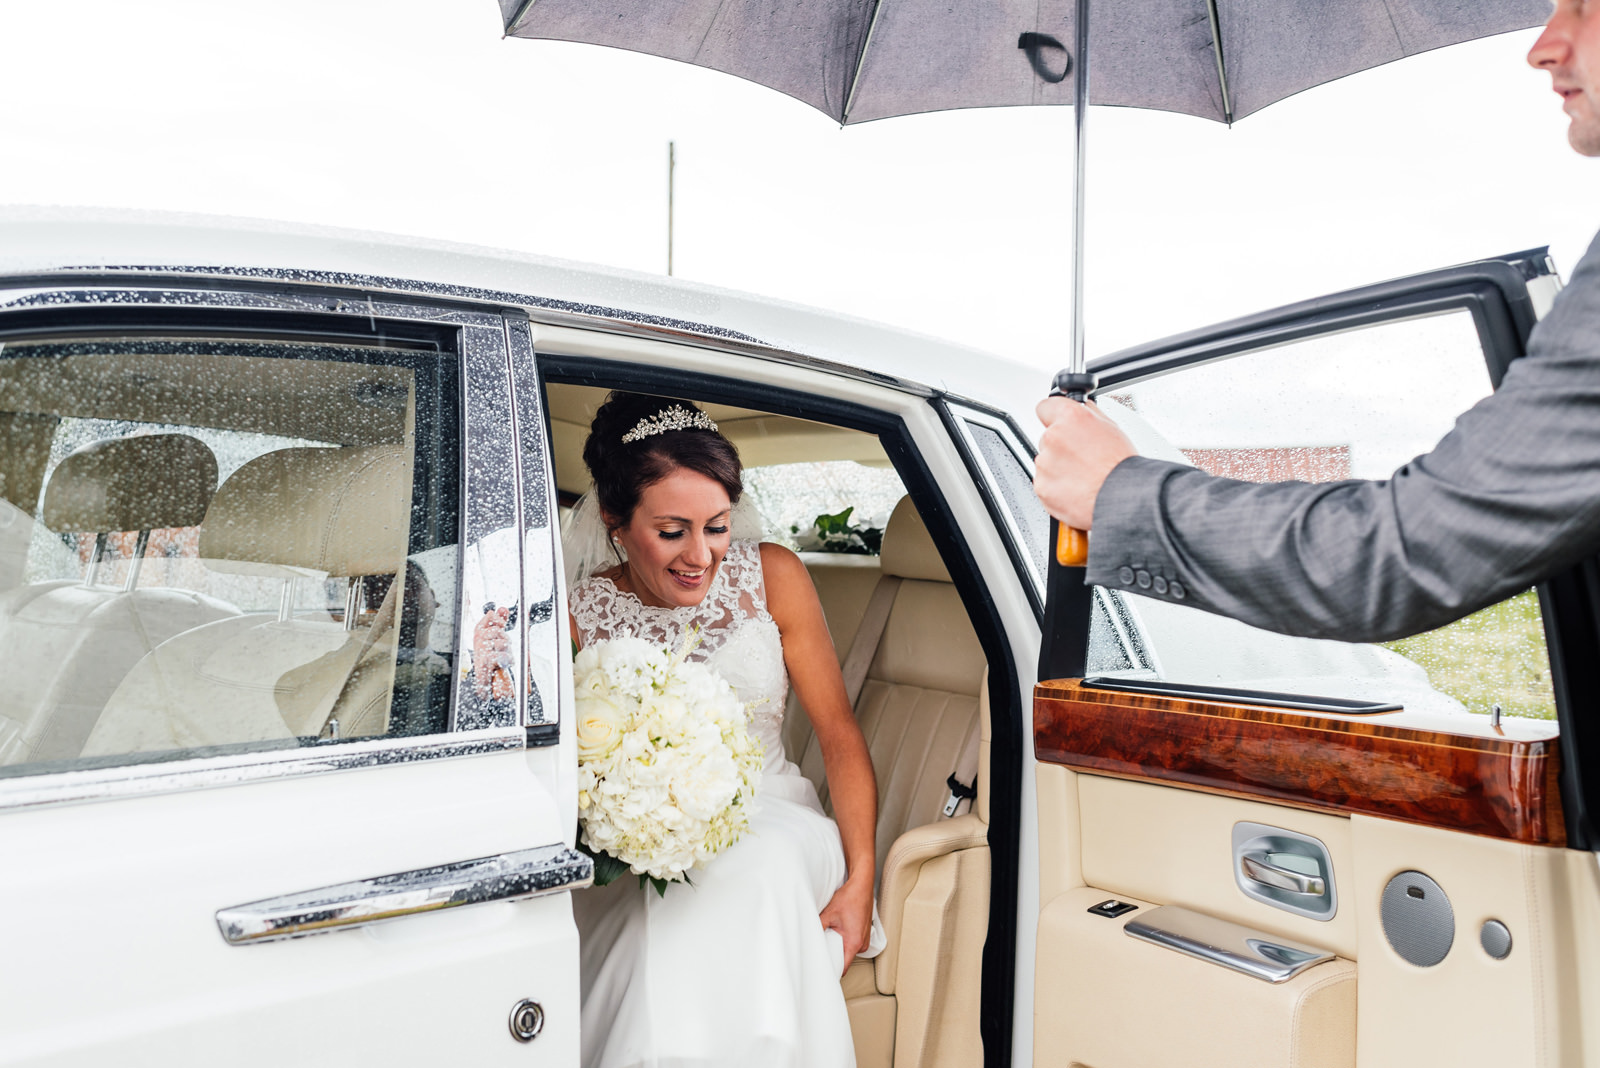 bride leaving the wedding car under umbrella